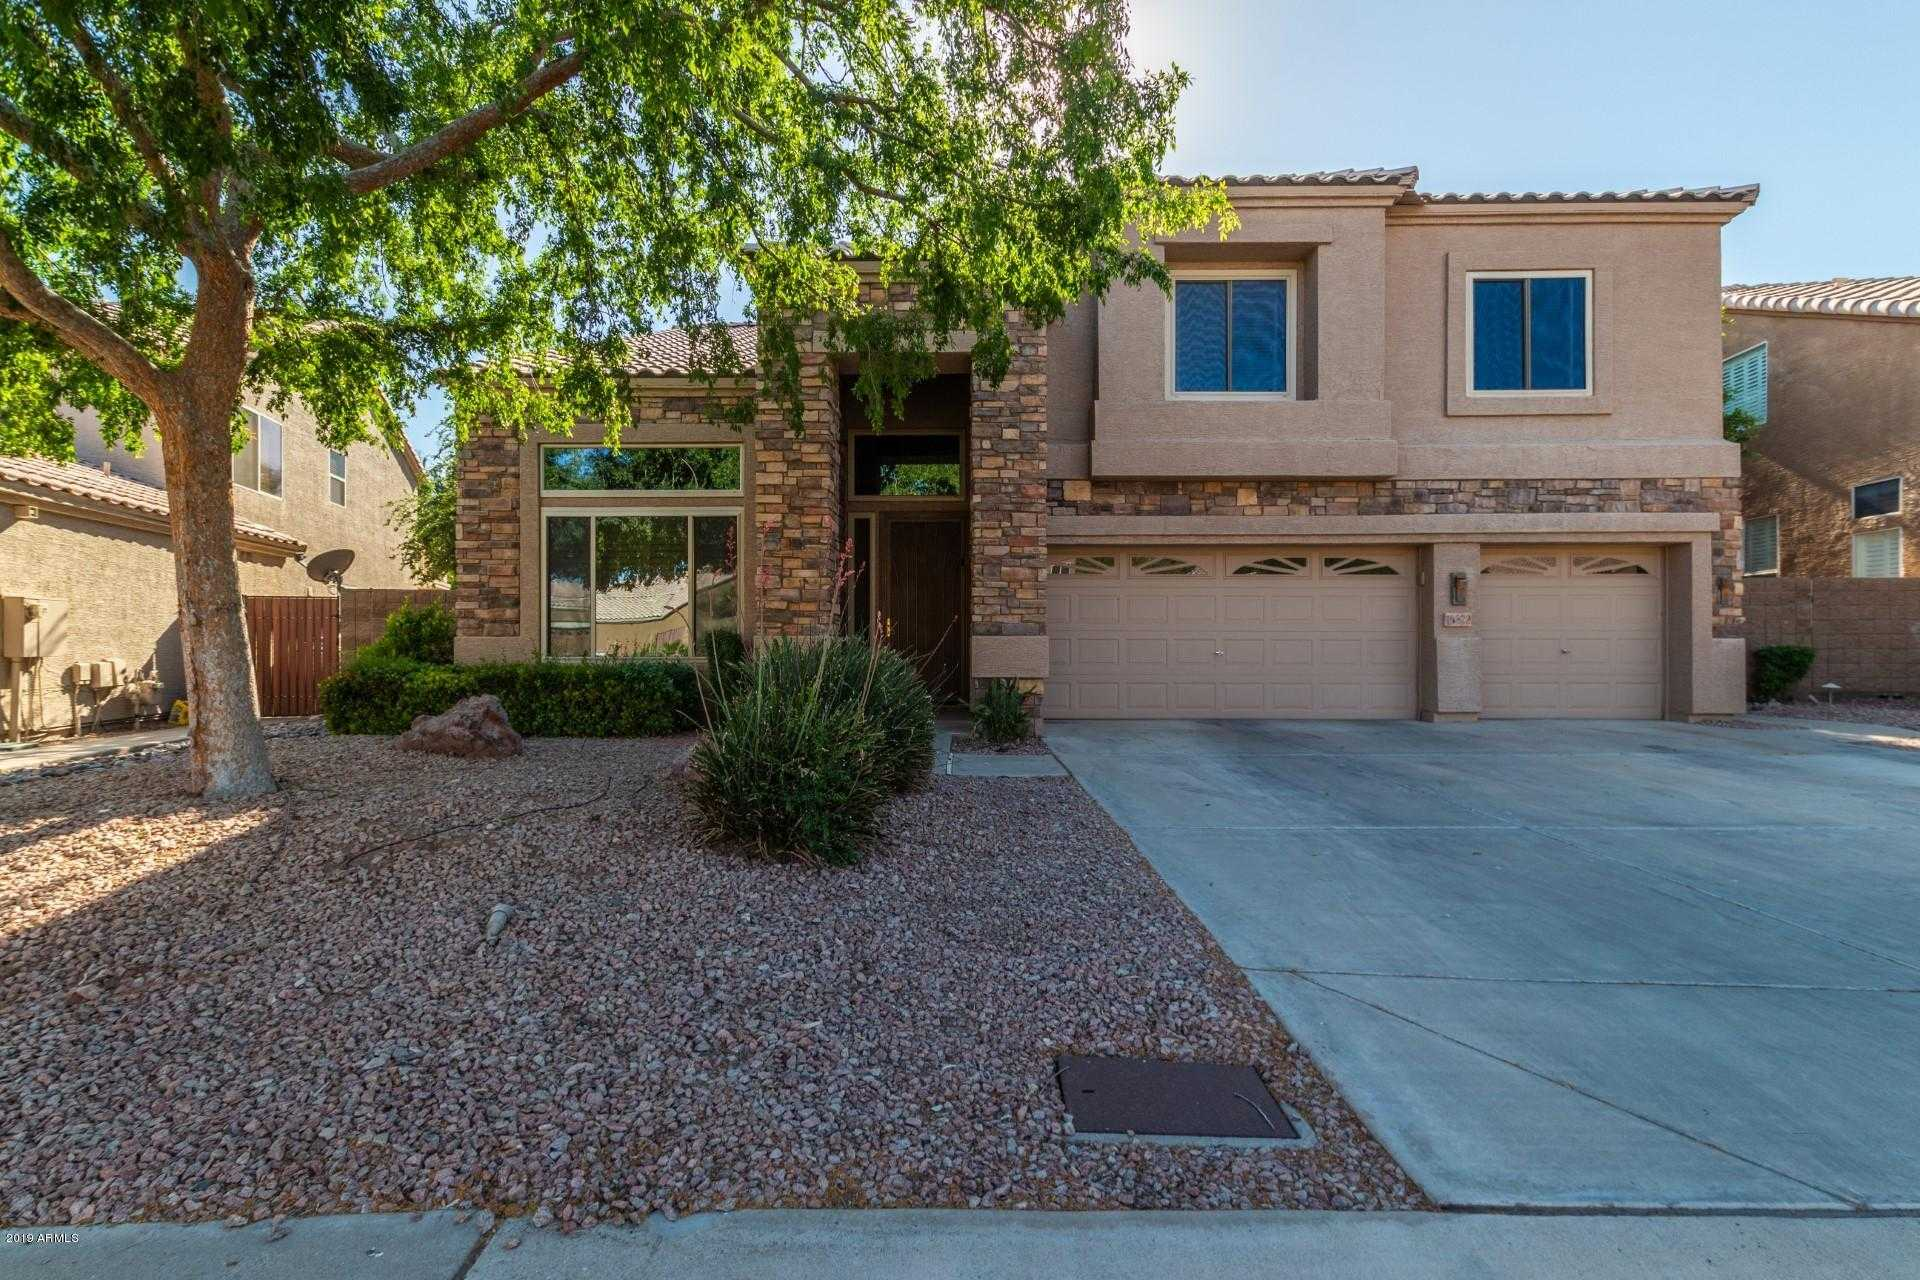 $440,000 - 5Br/3Ba - Home for Sale in Arrowhead Heights, Glendale